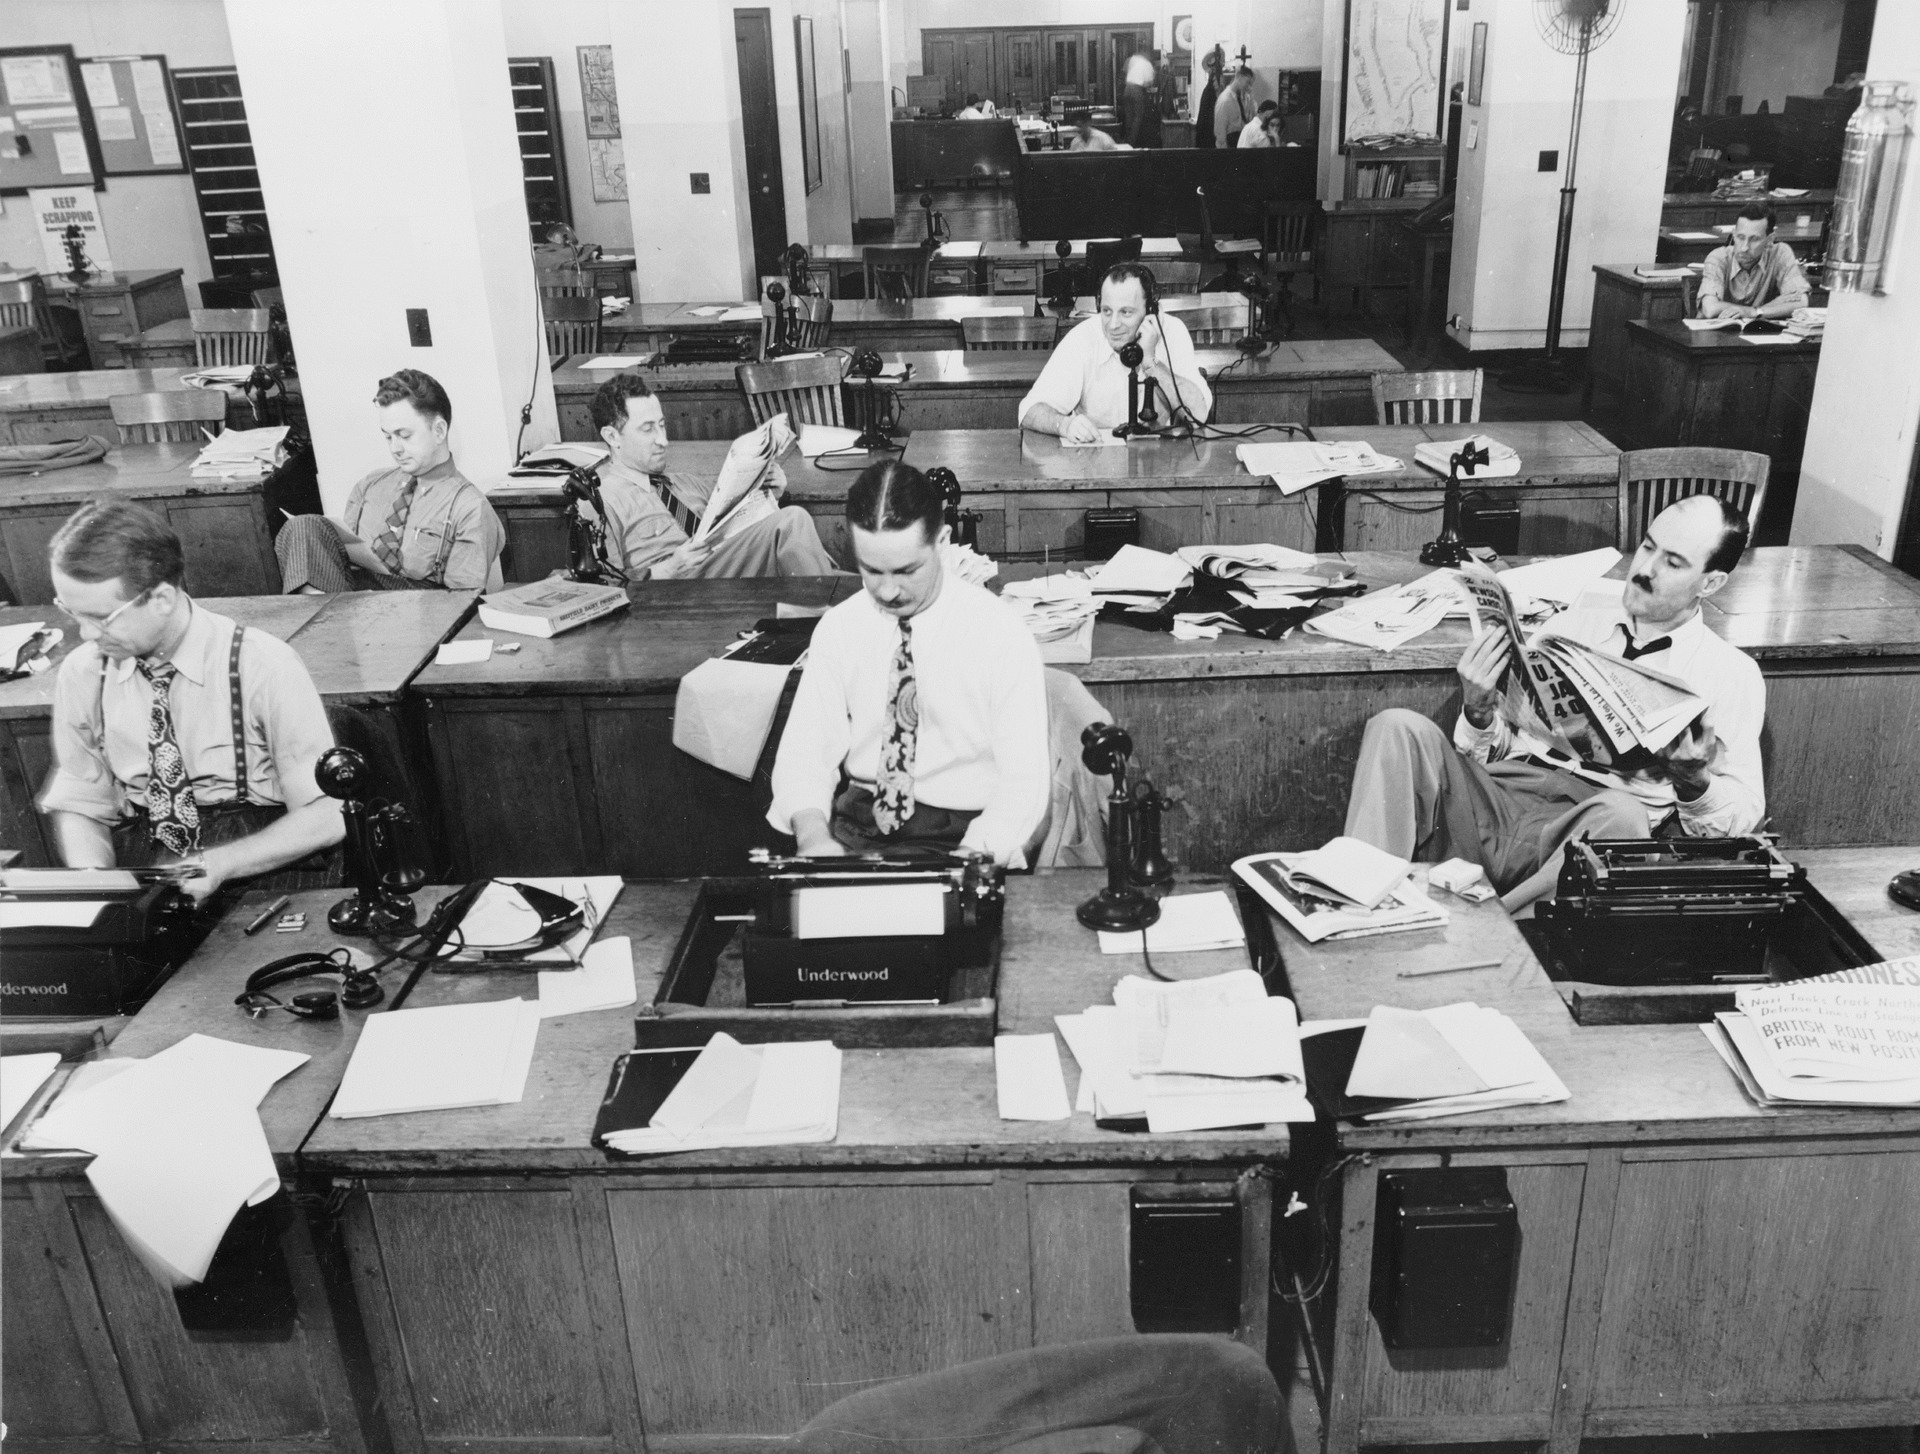 1942 - New York Times Newspaper pressroom, professional reporters